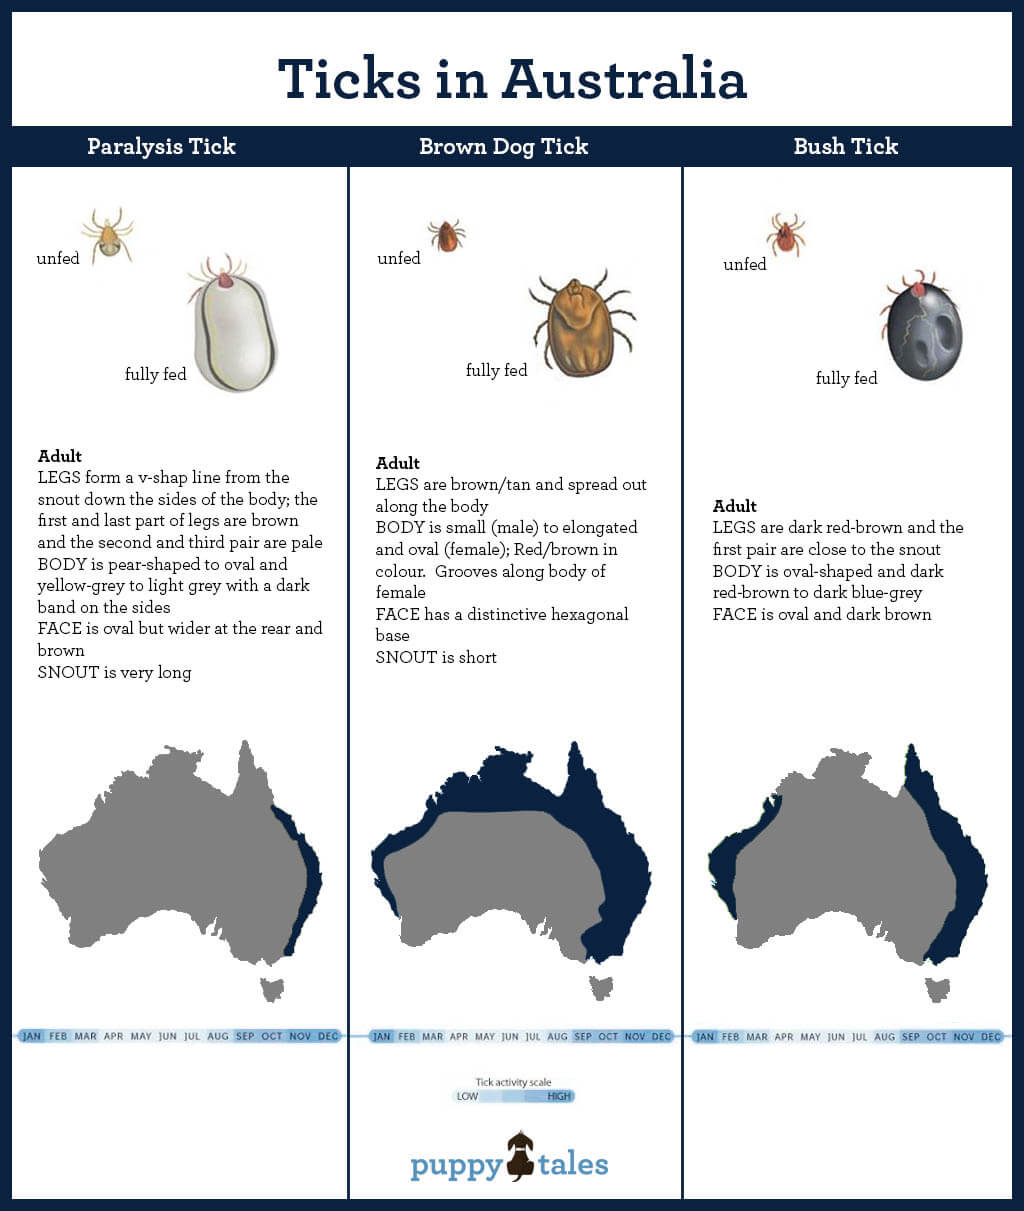 Ticks in Australia, identification and areas found